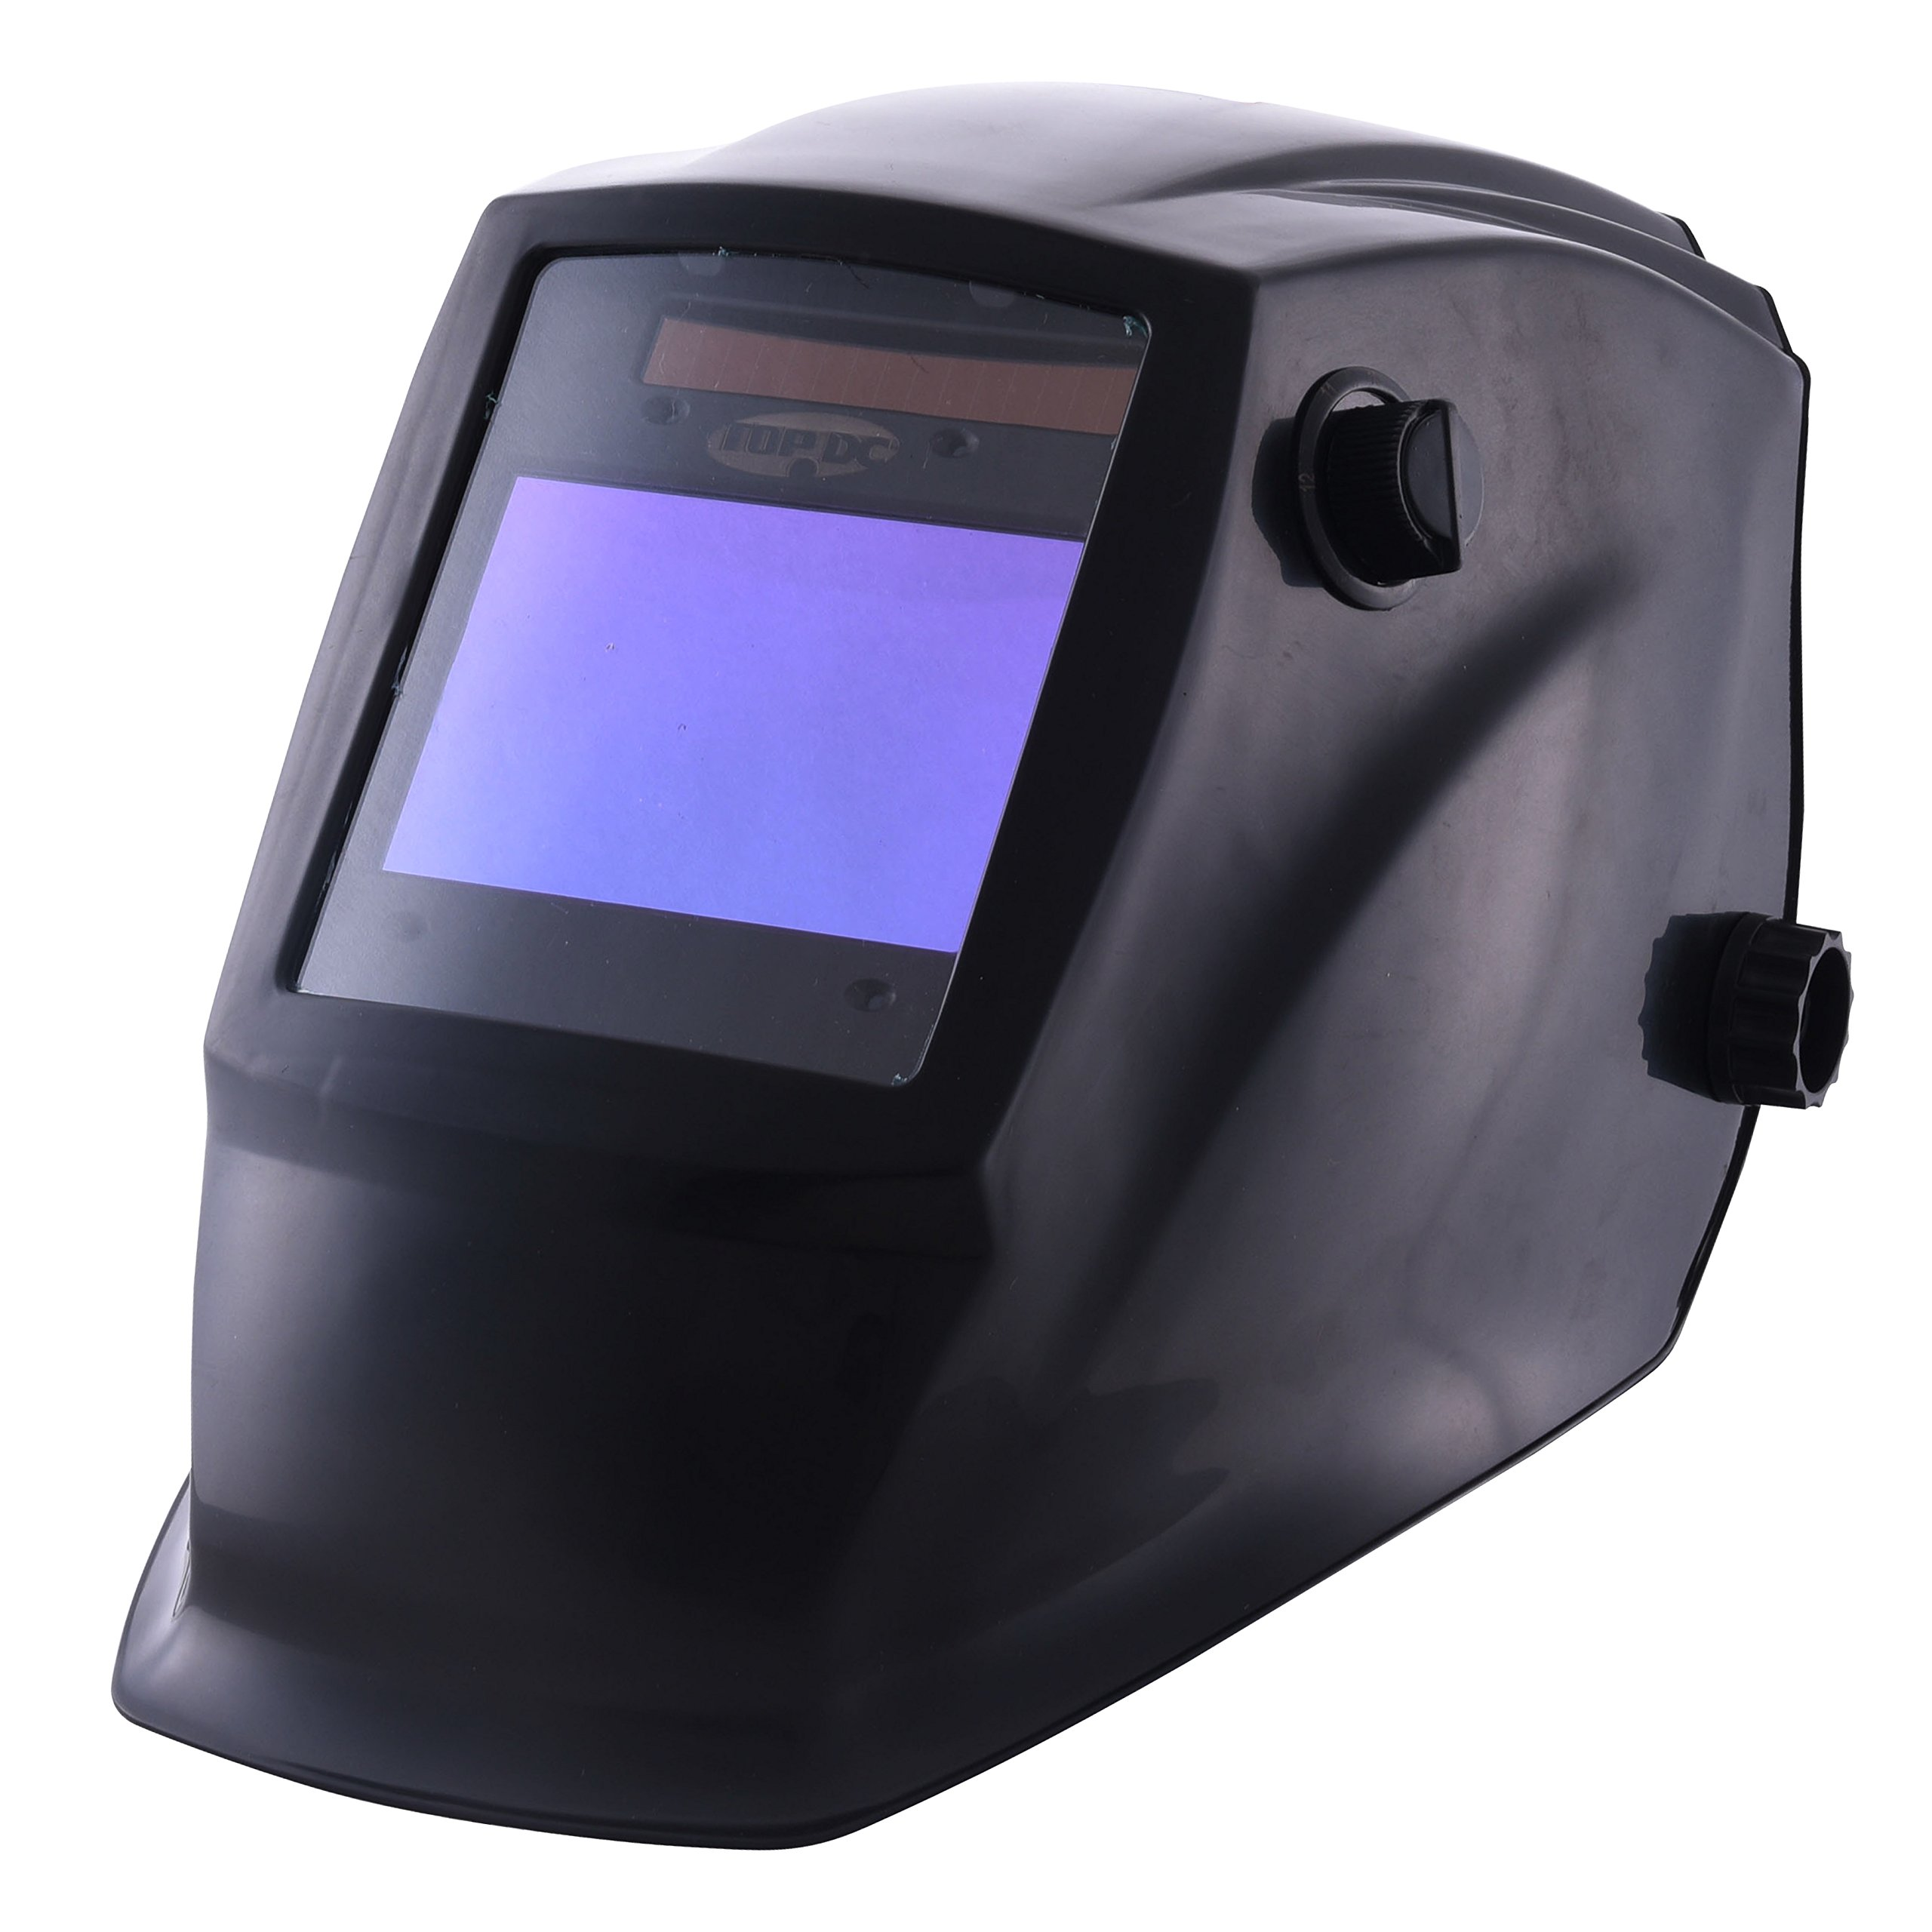 TOPDC Solar Power Auto Darkening Welding Helmet with Optical Class 1/1/1/2, Viewing Area 3.93''X2.63'', Shade Range 4/5-9/9-13 with Grinding Feature for TIG MIG MMA Plasma